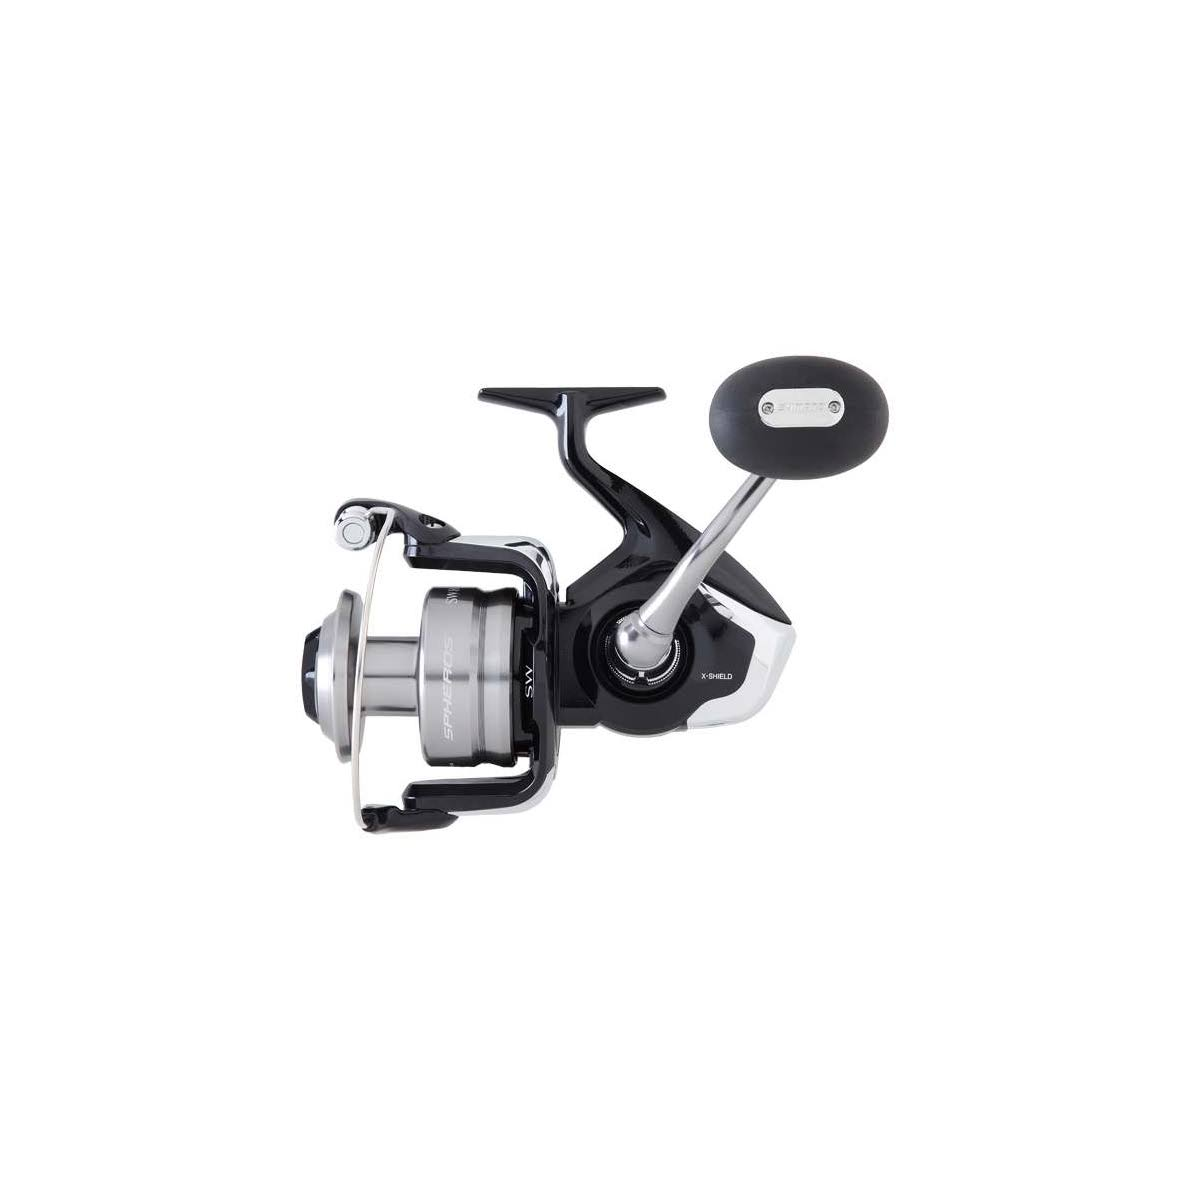 Shimano Spheros 8000 Sw Spinning Reel - Black